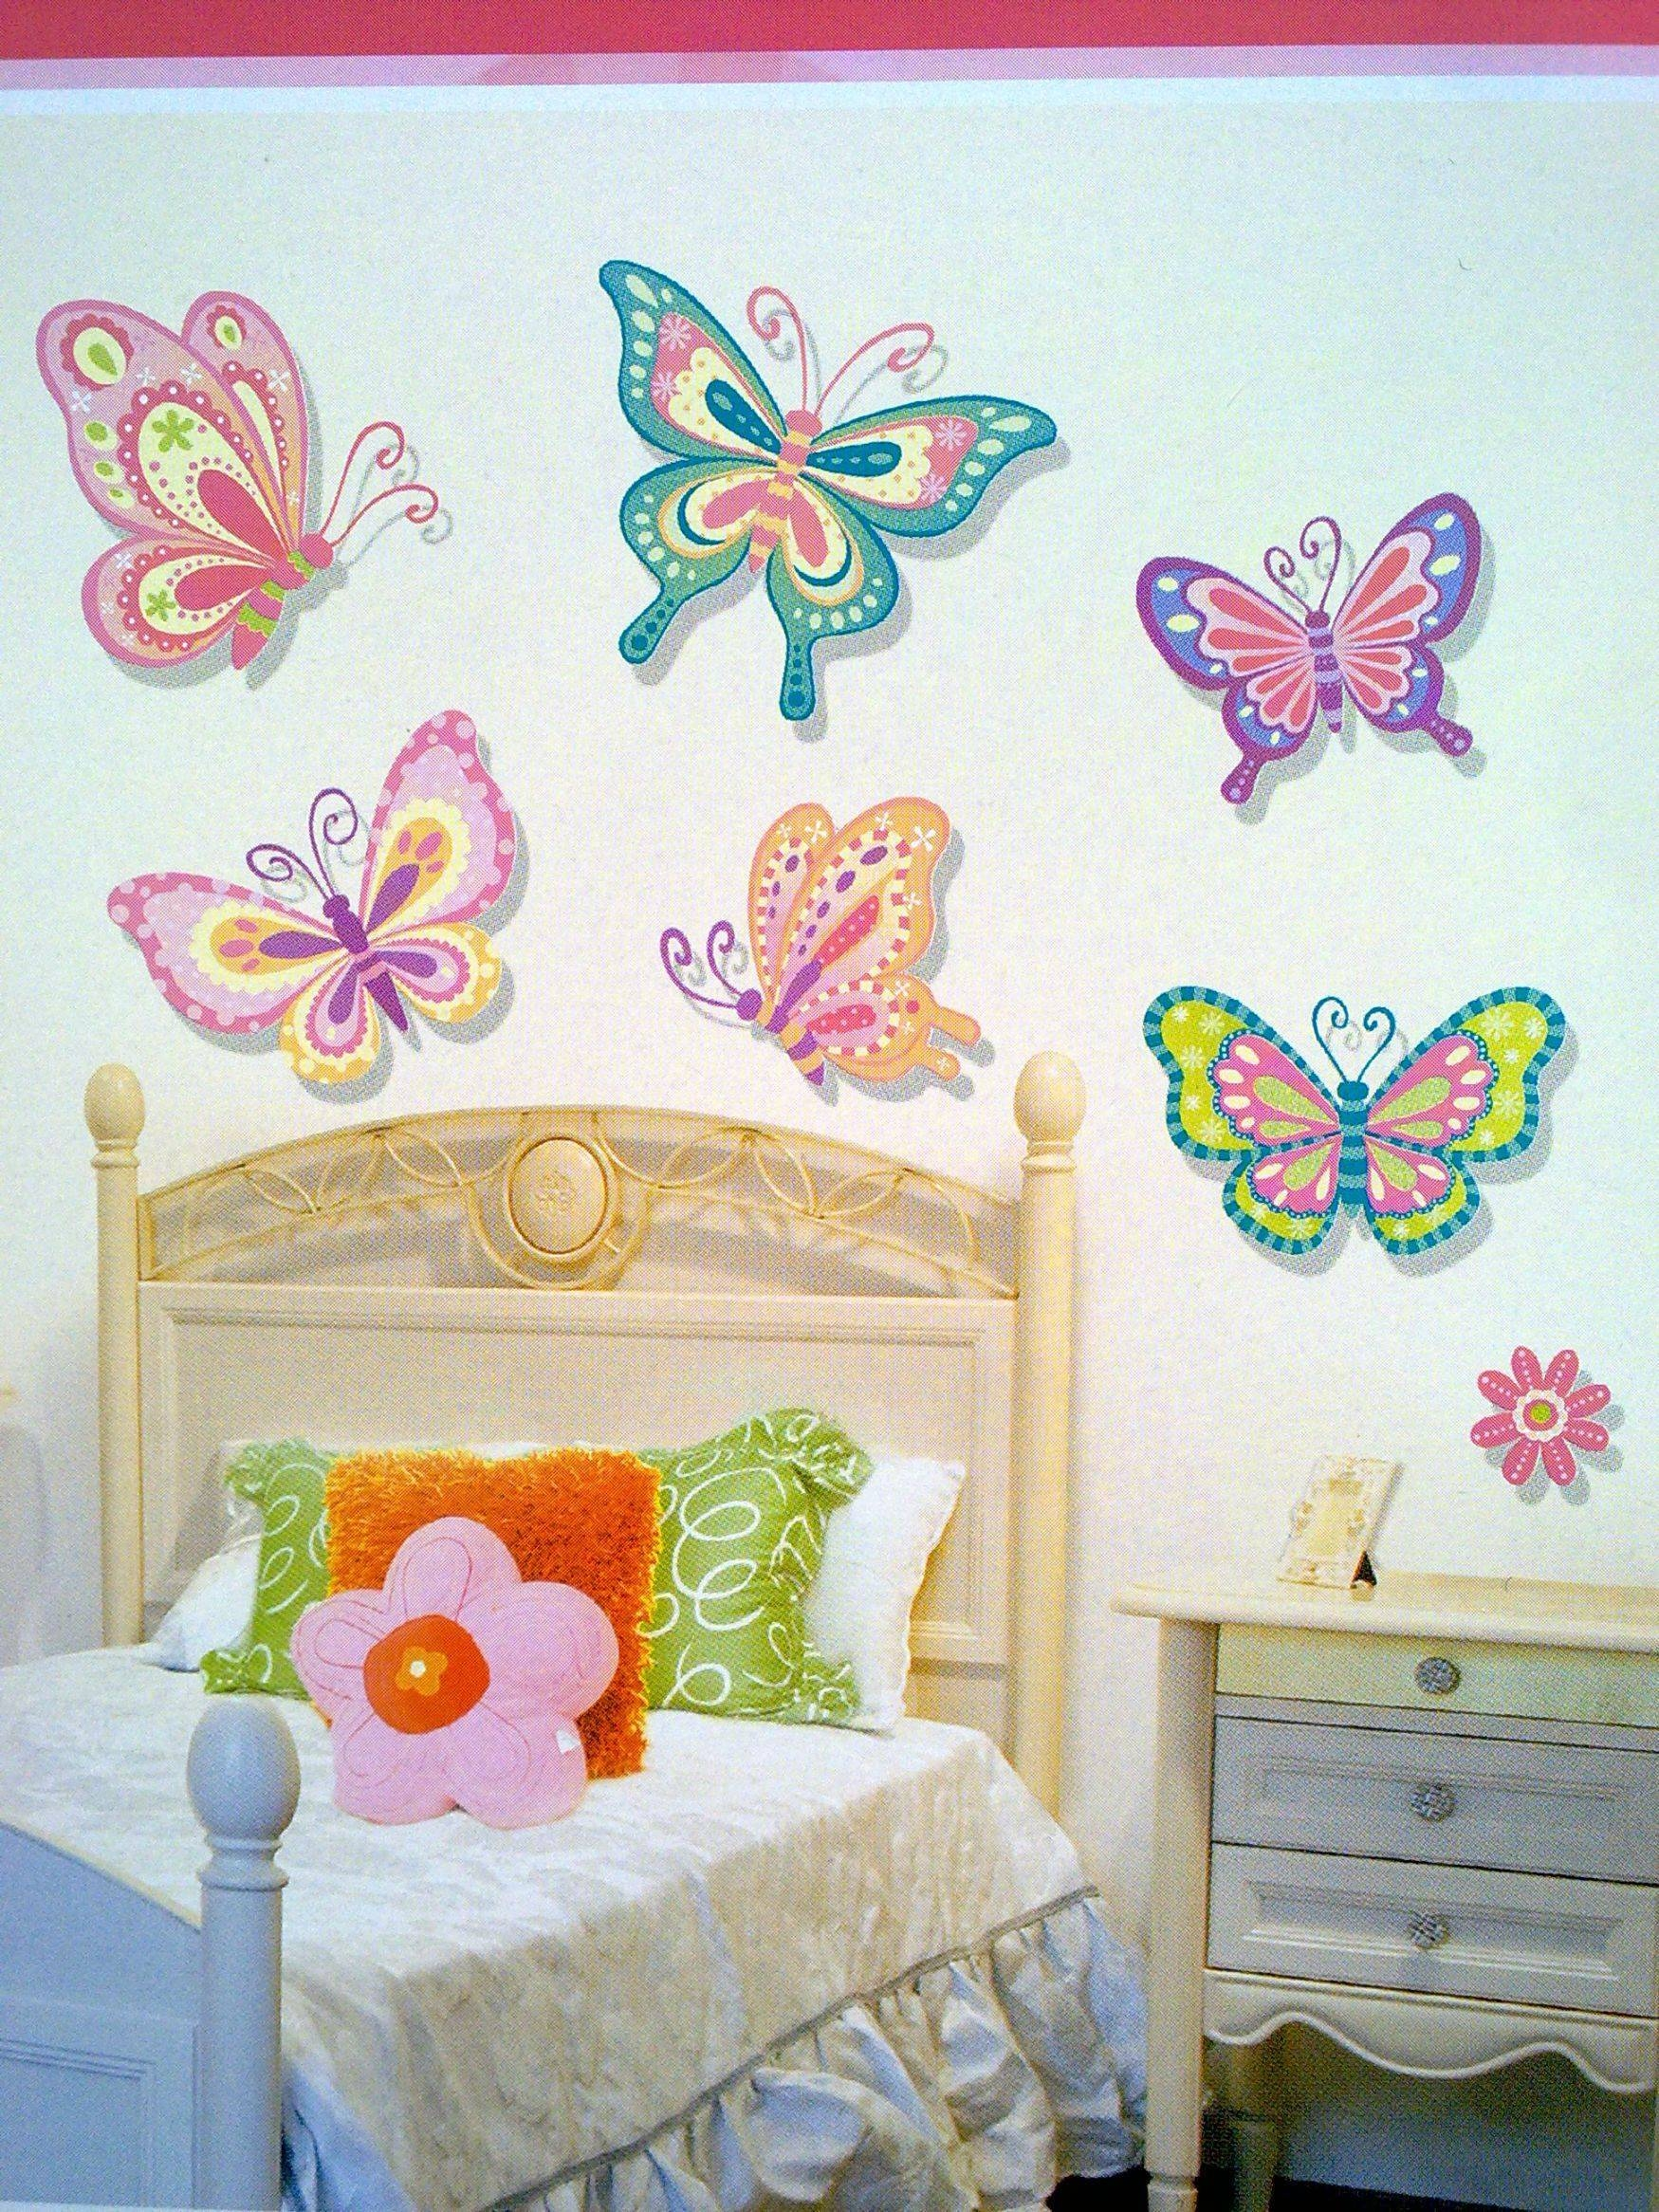 Kids Room. Wall Decal Ideas For Wall Decorations: Colorful For 2017 Wall Art Stickers For Childrens Rooms (Gallery 20 of 20)